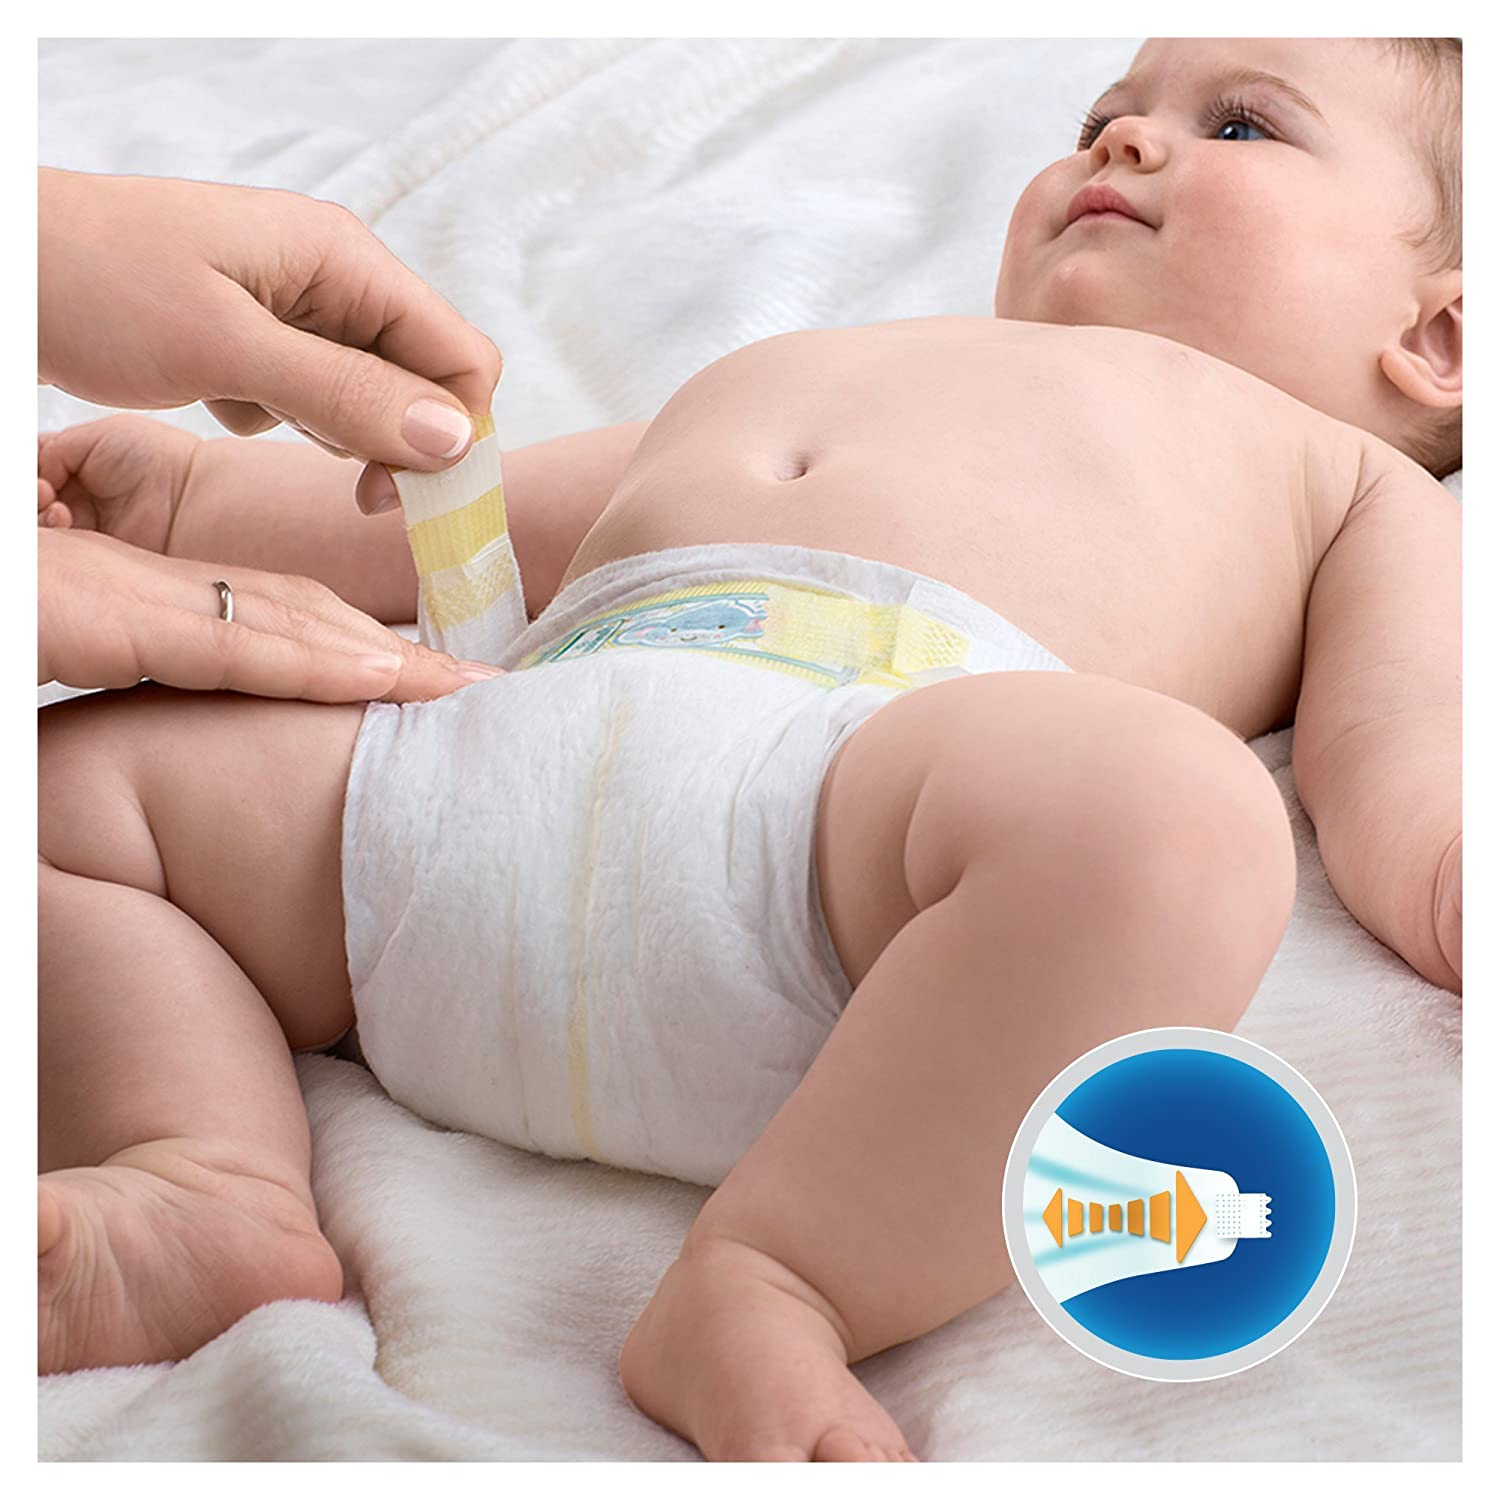 Amazon.com: Dodot Sensitive-Nappies Talla 2 - 238 paales by Dodot: Health & Personal Care